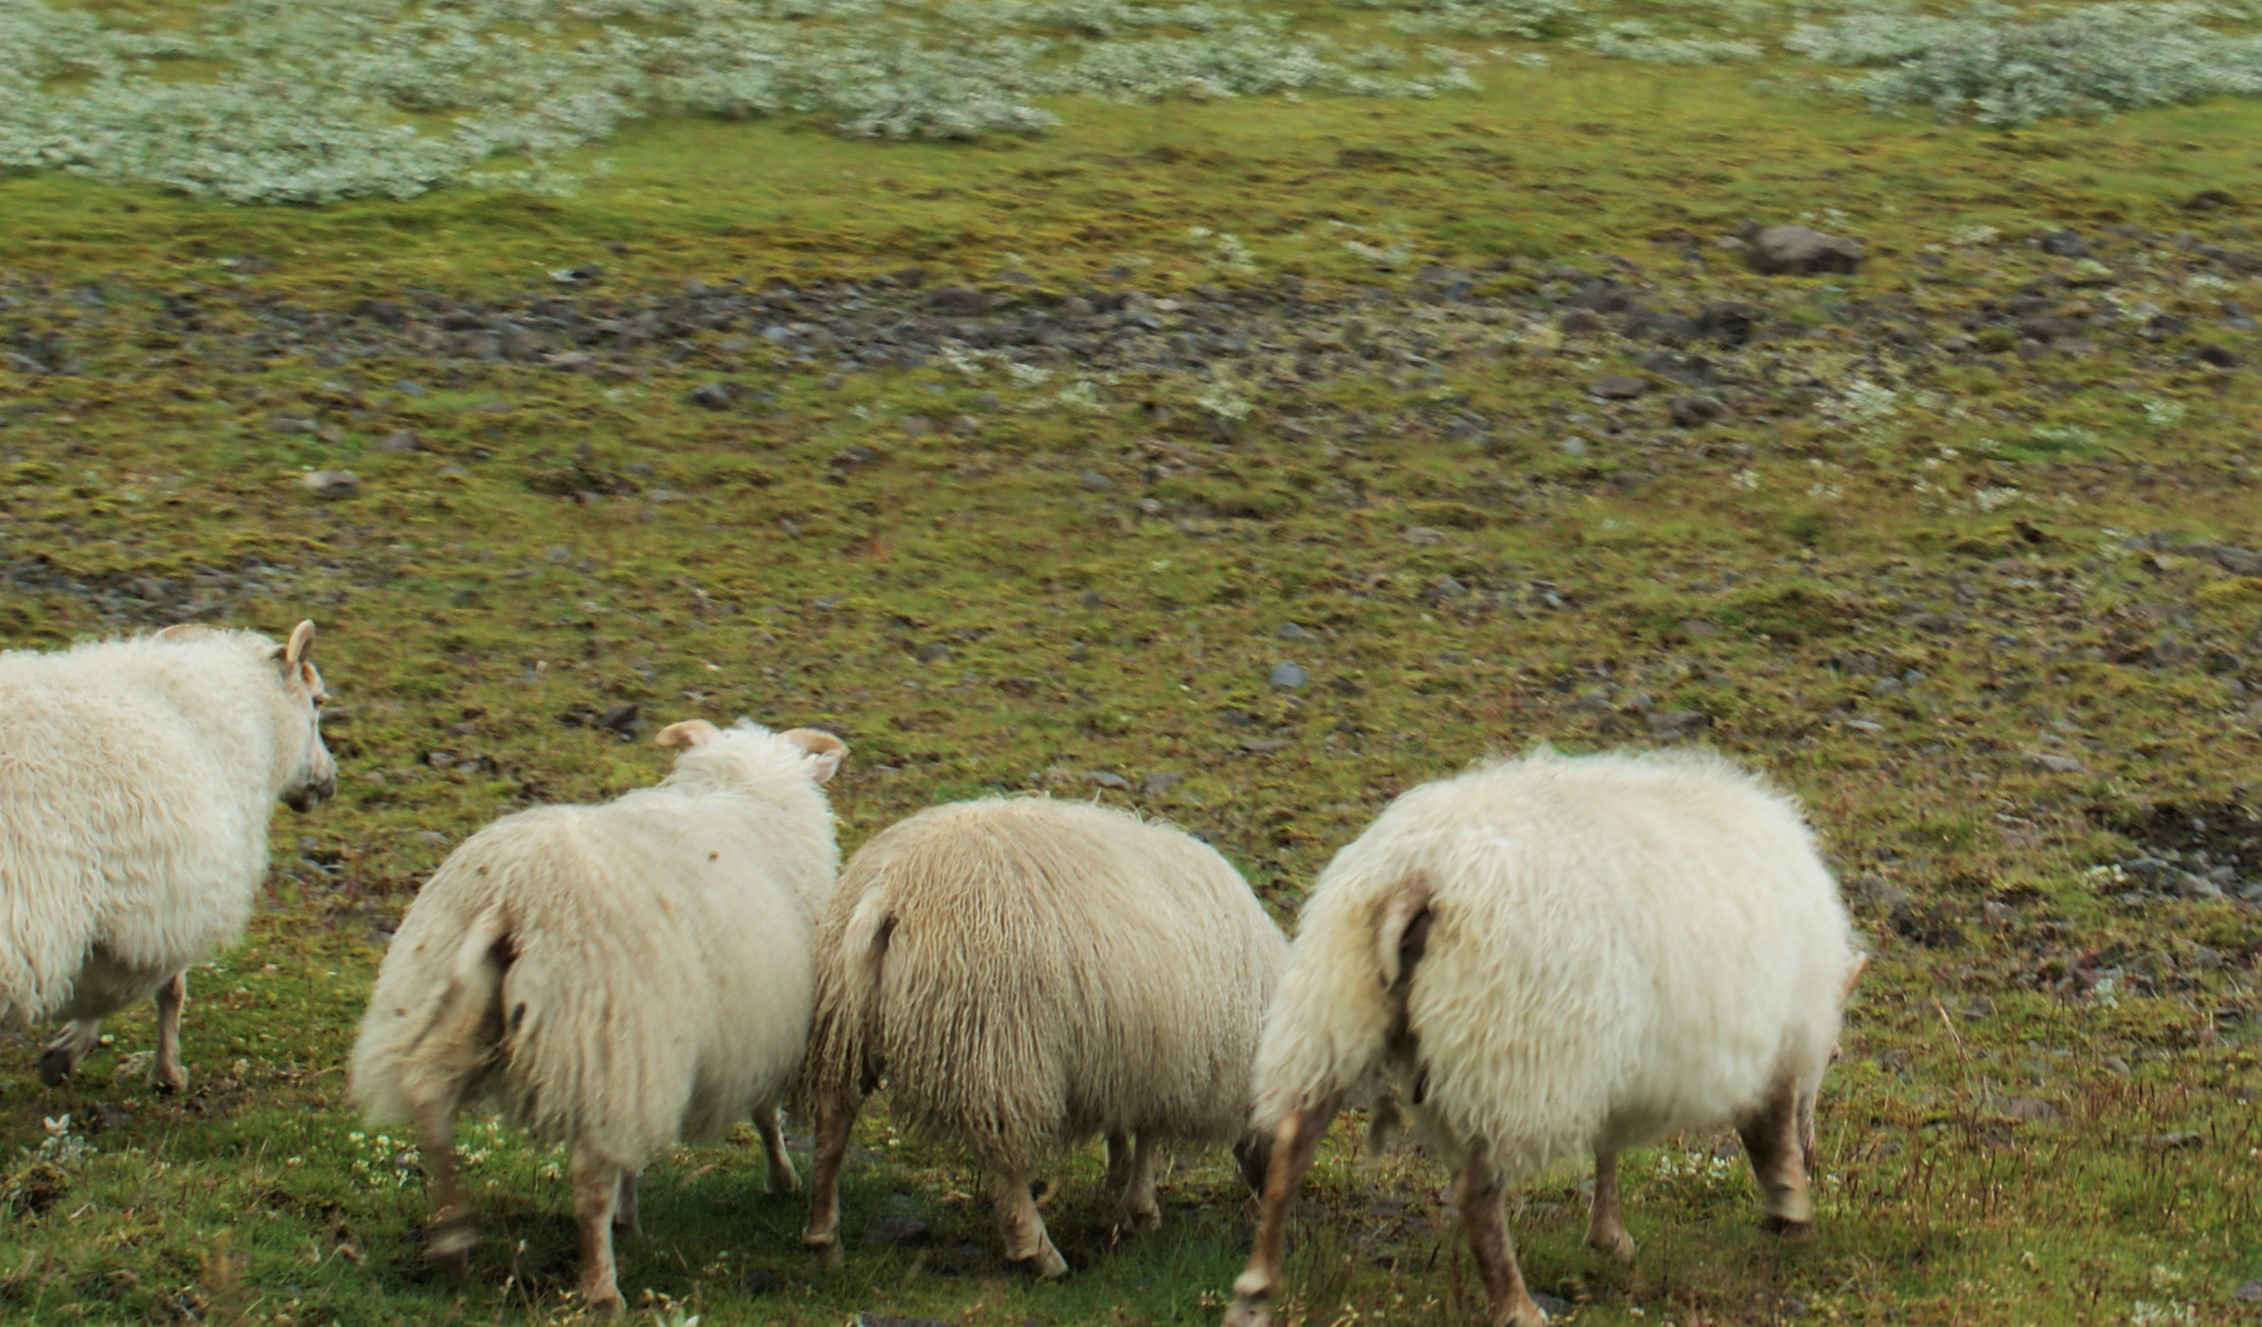 Sheep butts